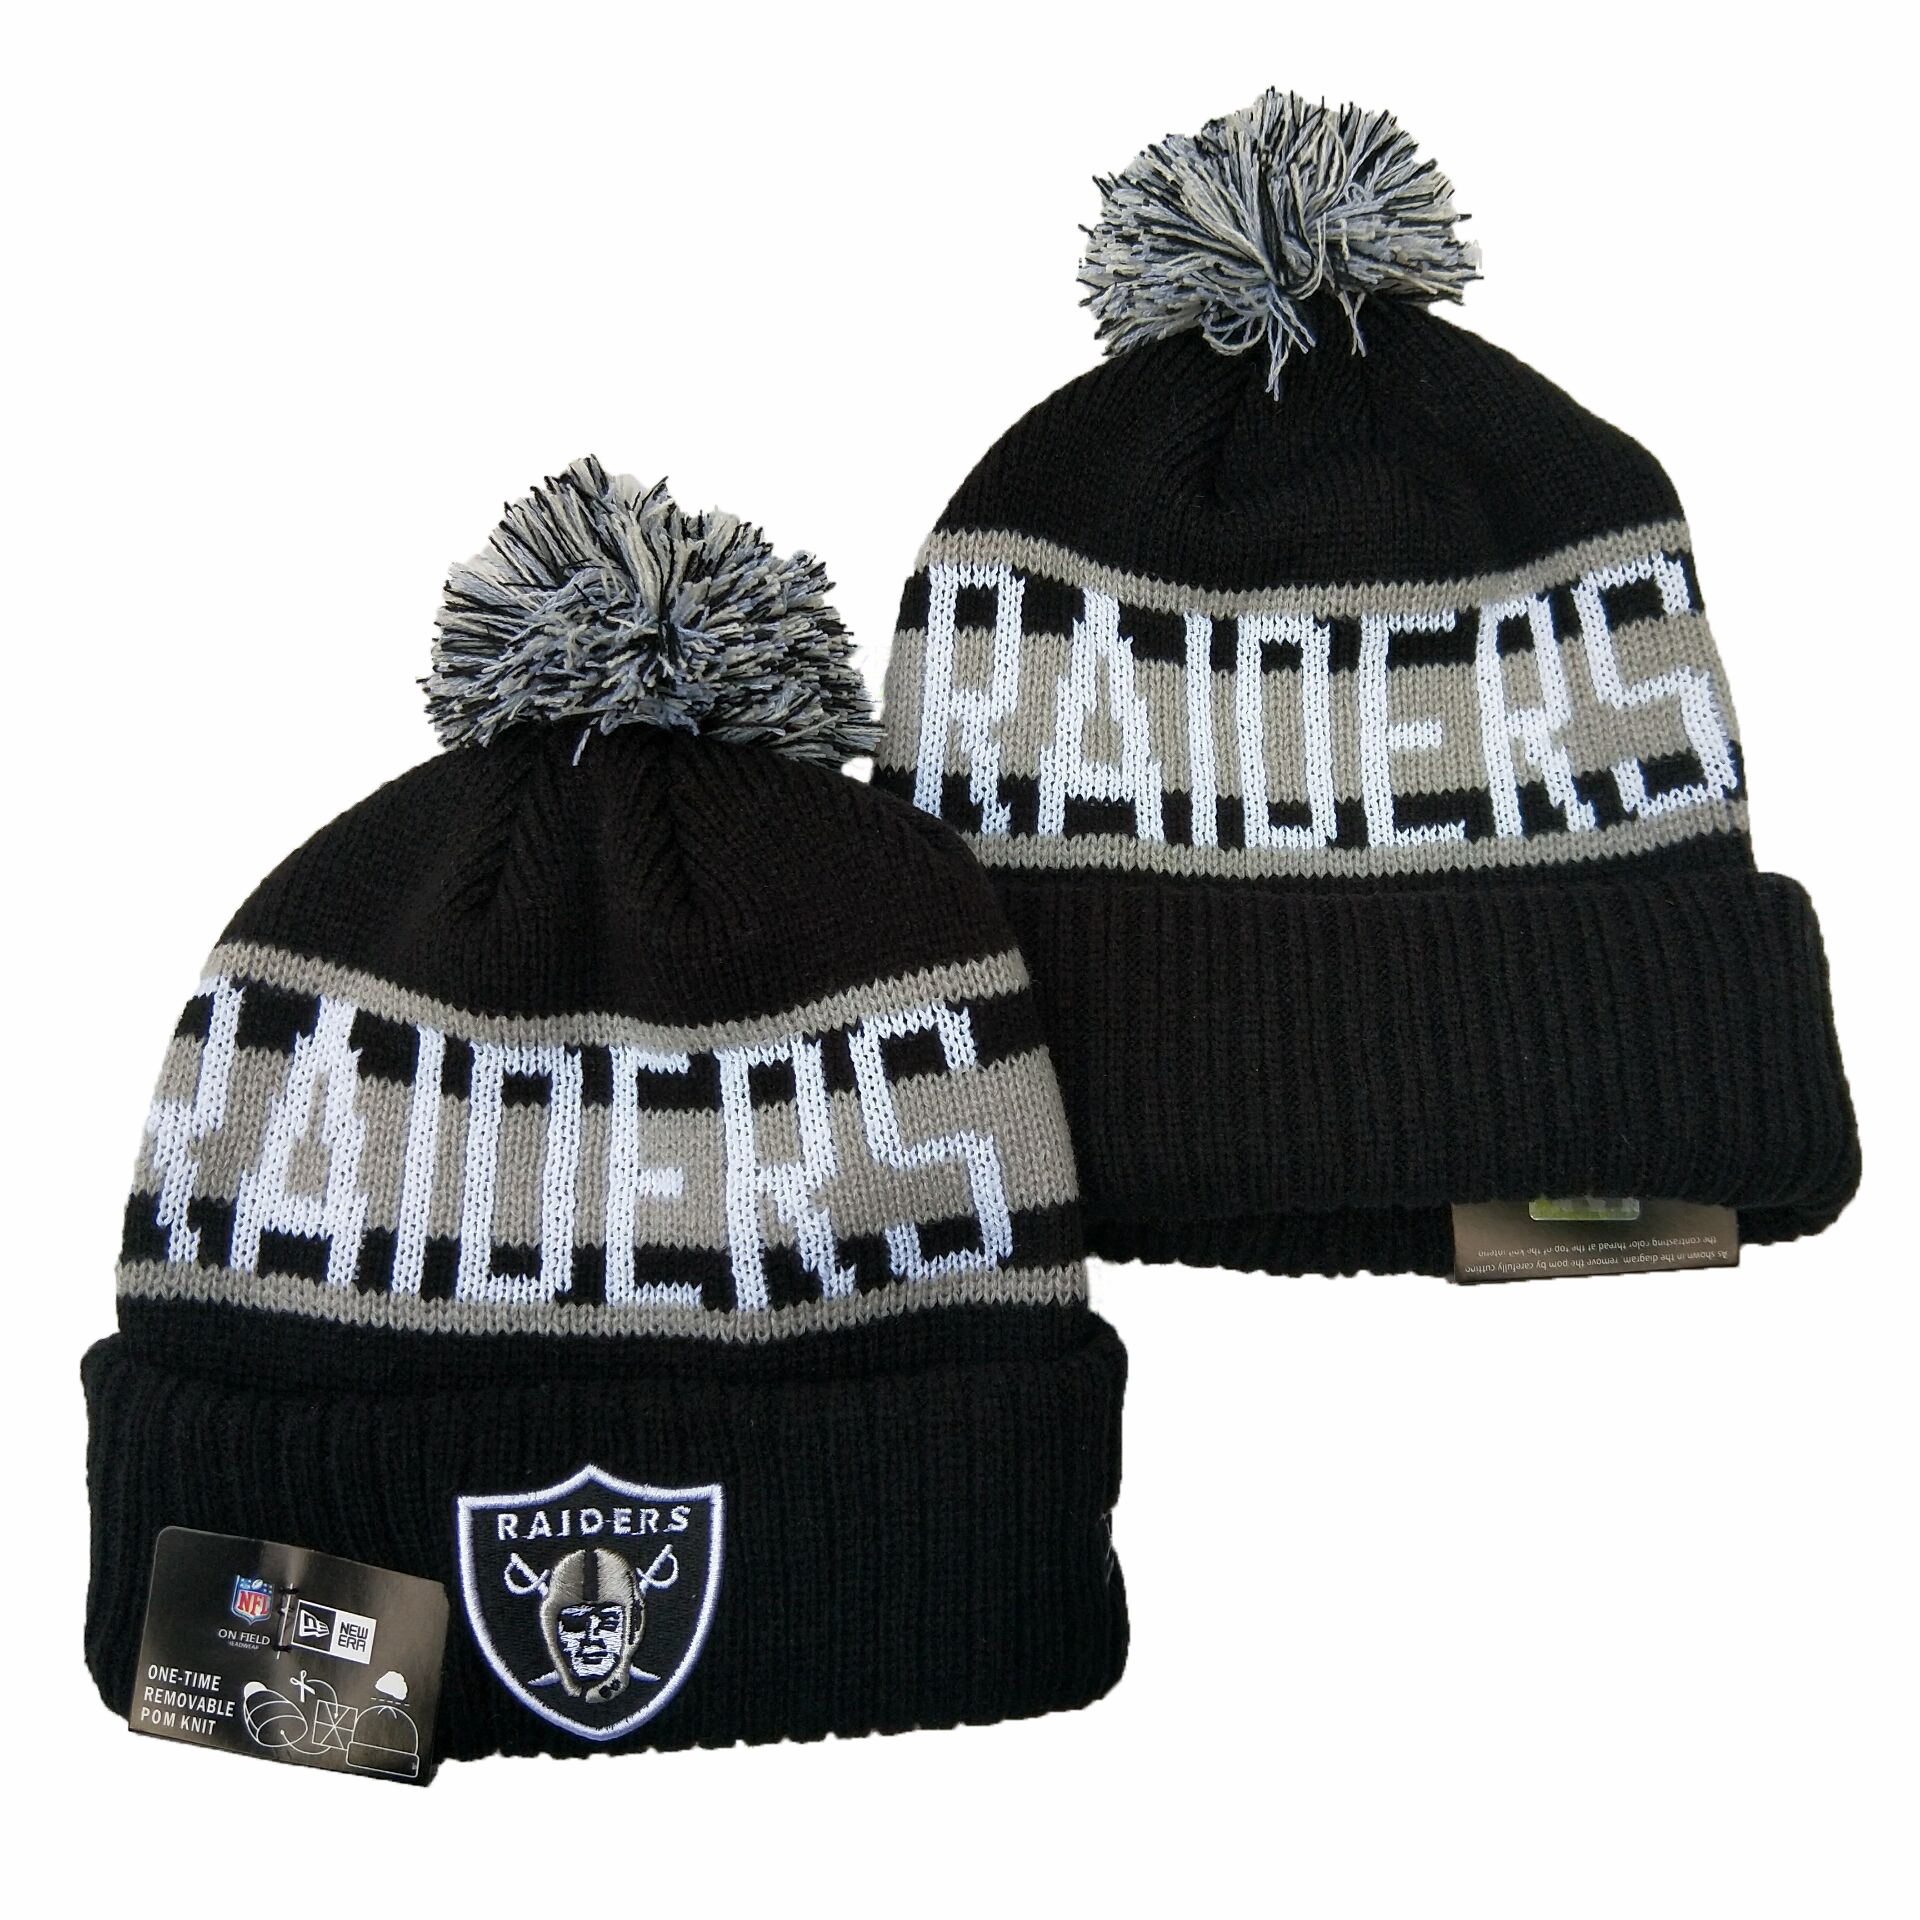 Las Vegas Raiders Knit Hats 055